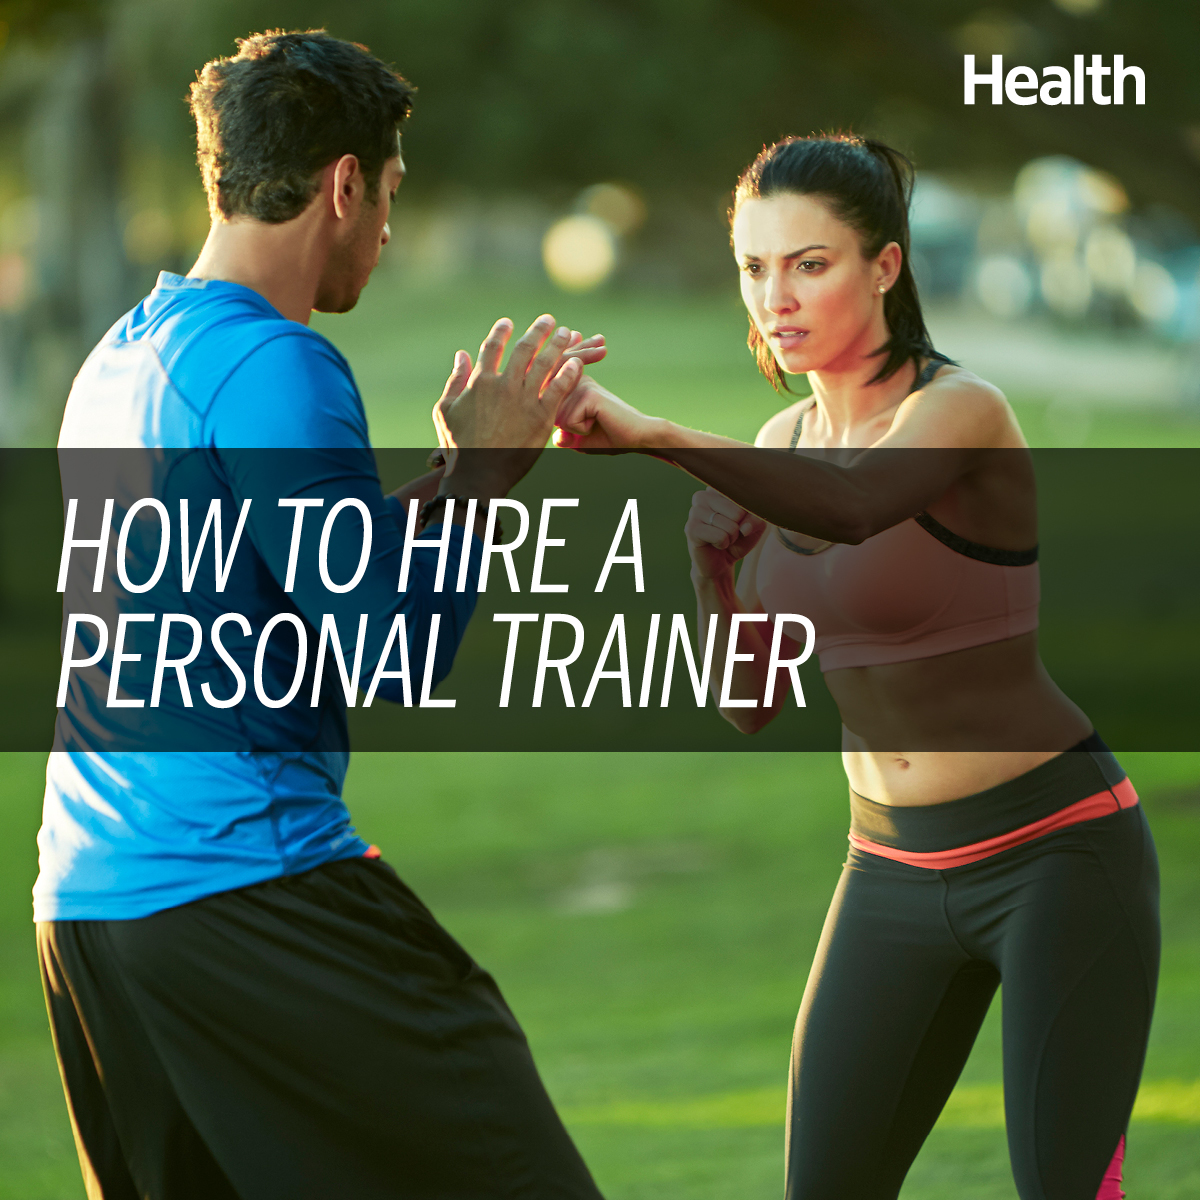 4 Rules for Hiring a Personal Trainer - Health